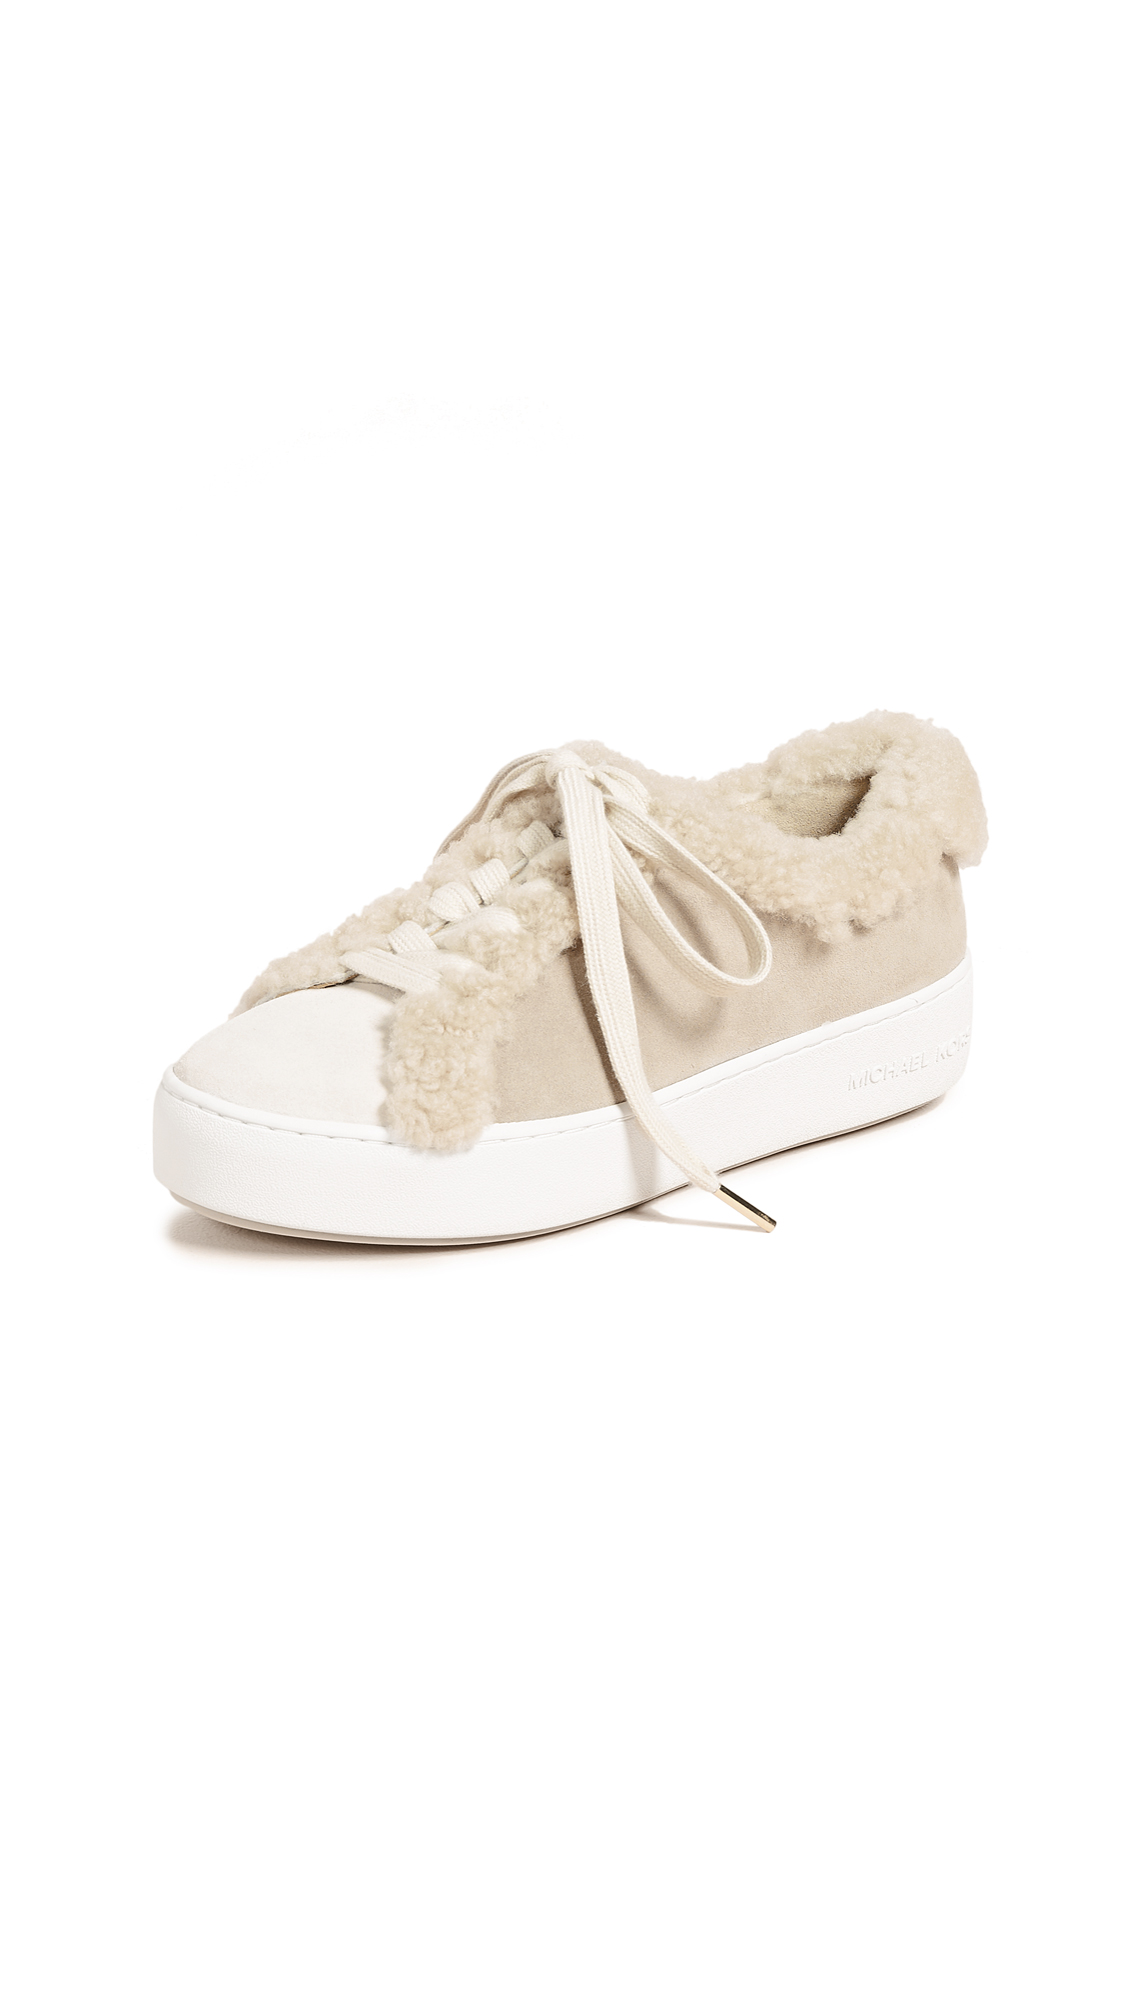 MICHAEL Michael Kors Poppy Lace Up Shearling Sneakers - Light Cream